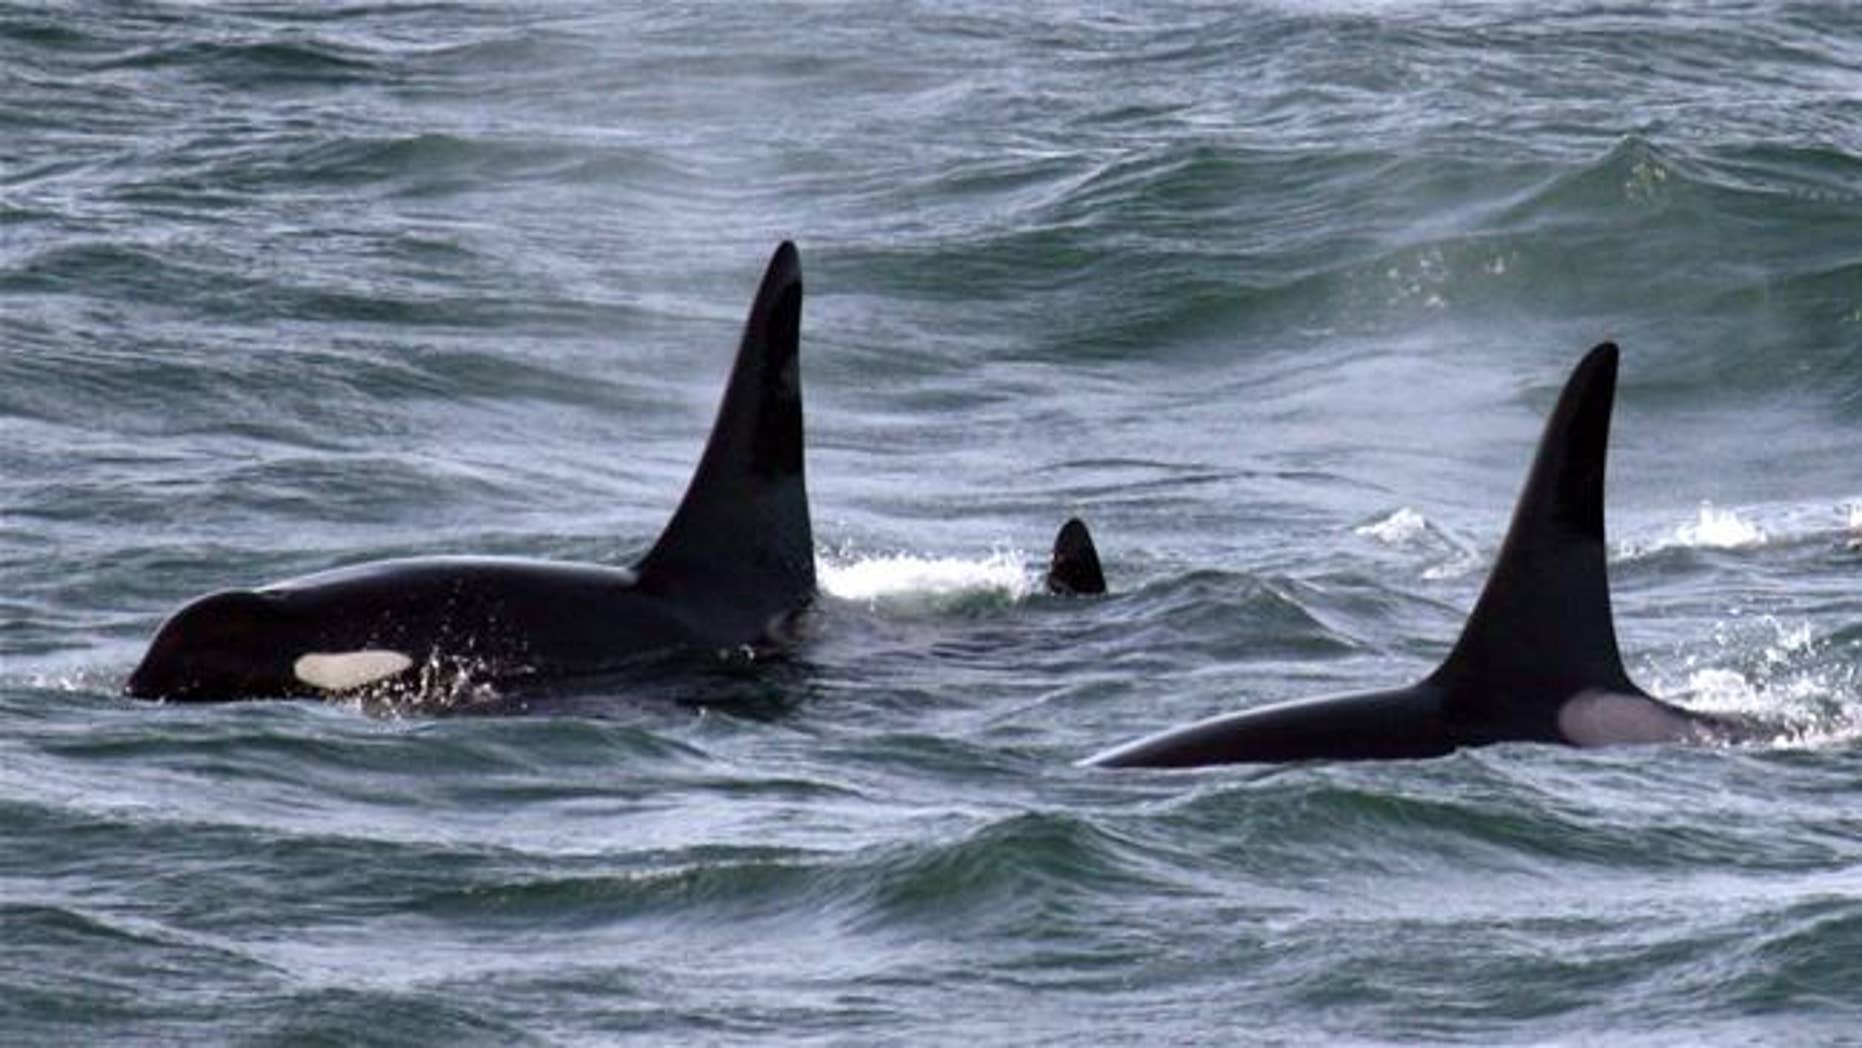 File photo of orcas off the coast of Washington. Neither is 'Granny,' but photos of her leaping from the water are at the Orca Network link in the summary.